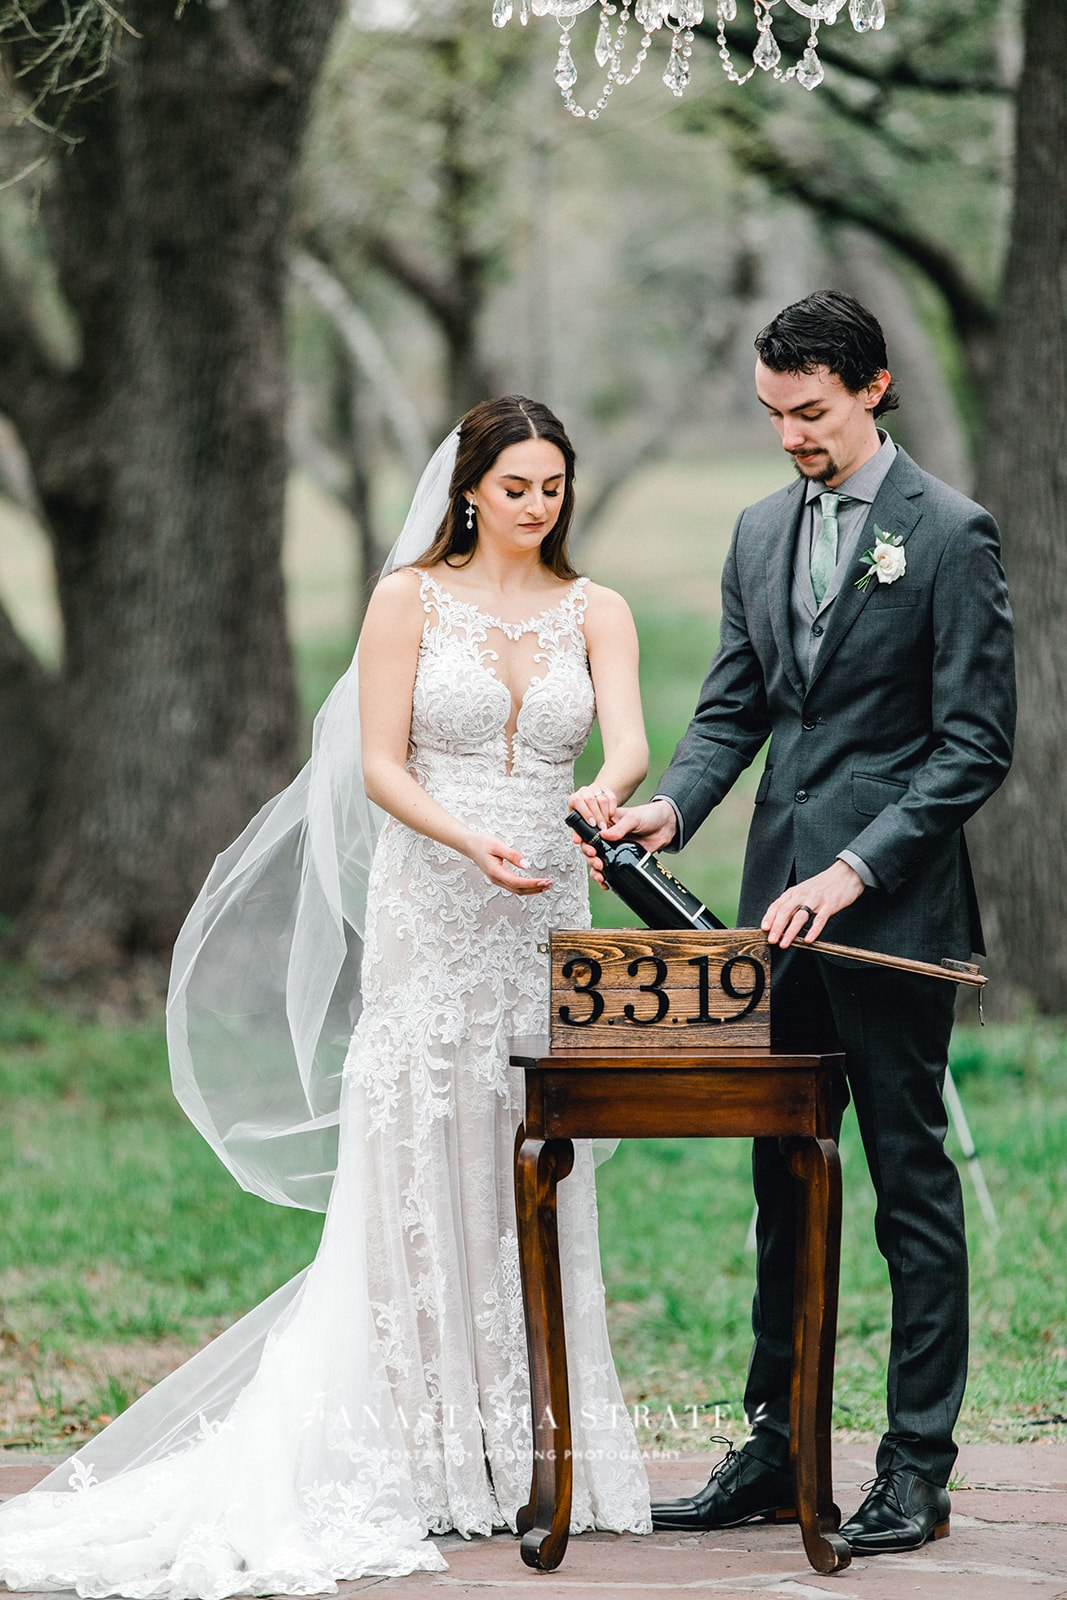 Austin Texas wedding planner